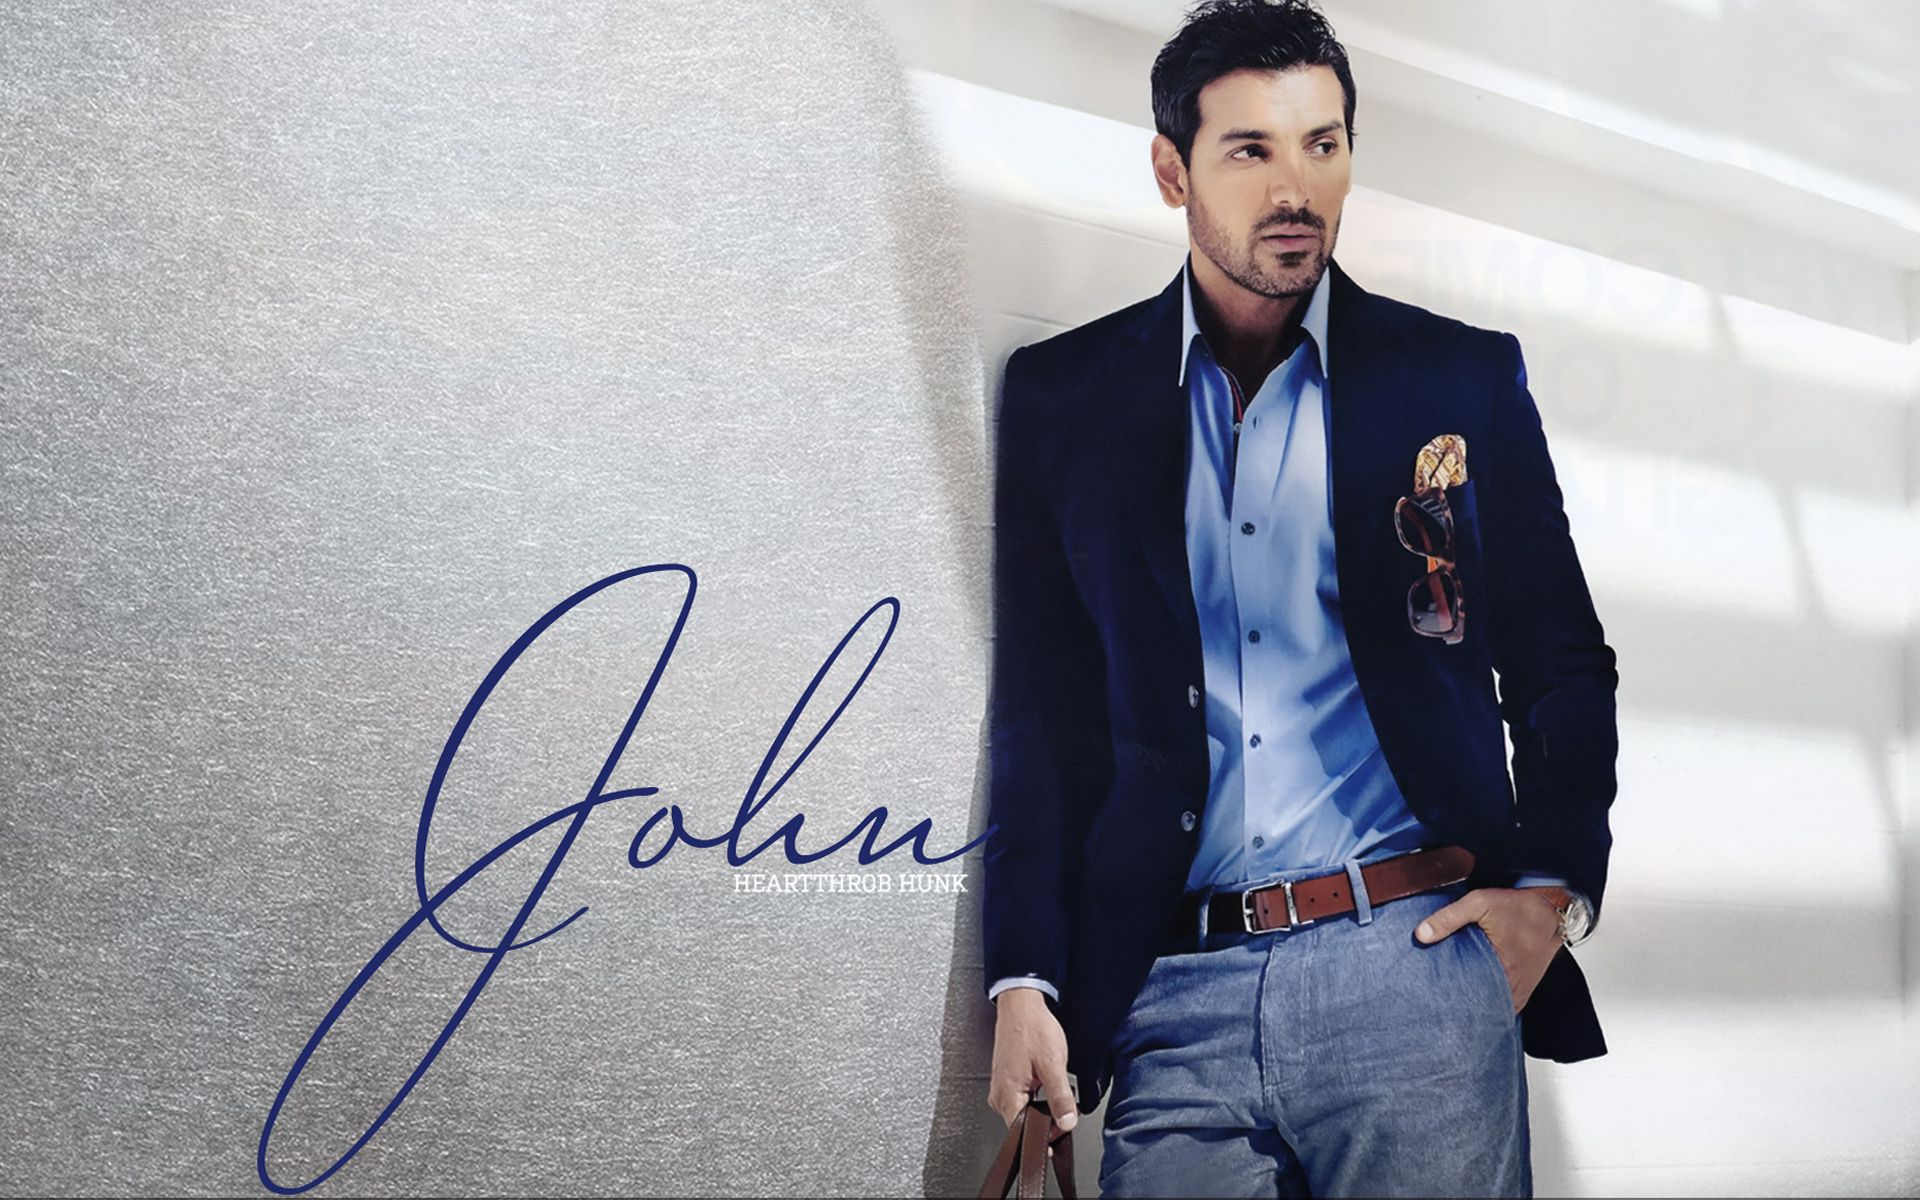 Wallpaper download john abraham - John Abraham Hd Wallpaper John Abraham Bollywood Actor Hindi Film Indian